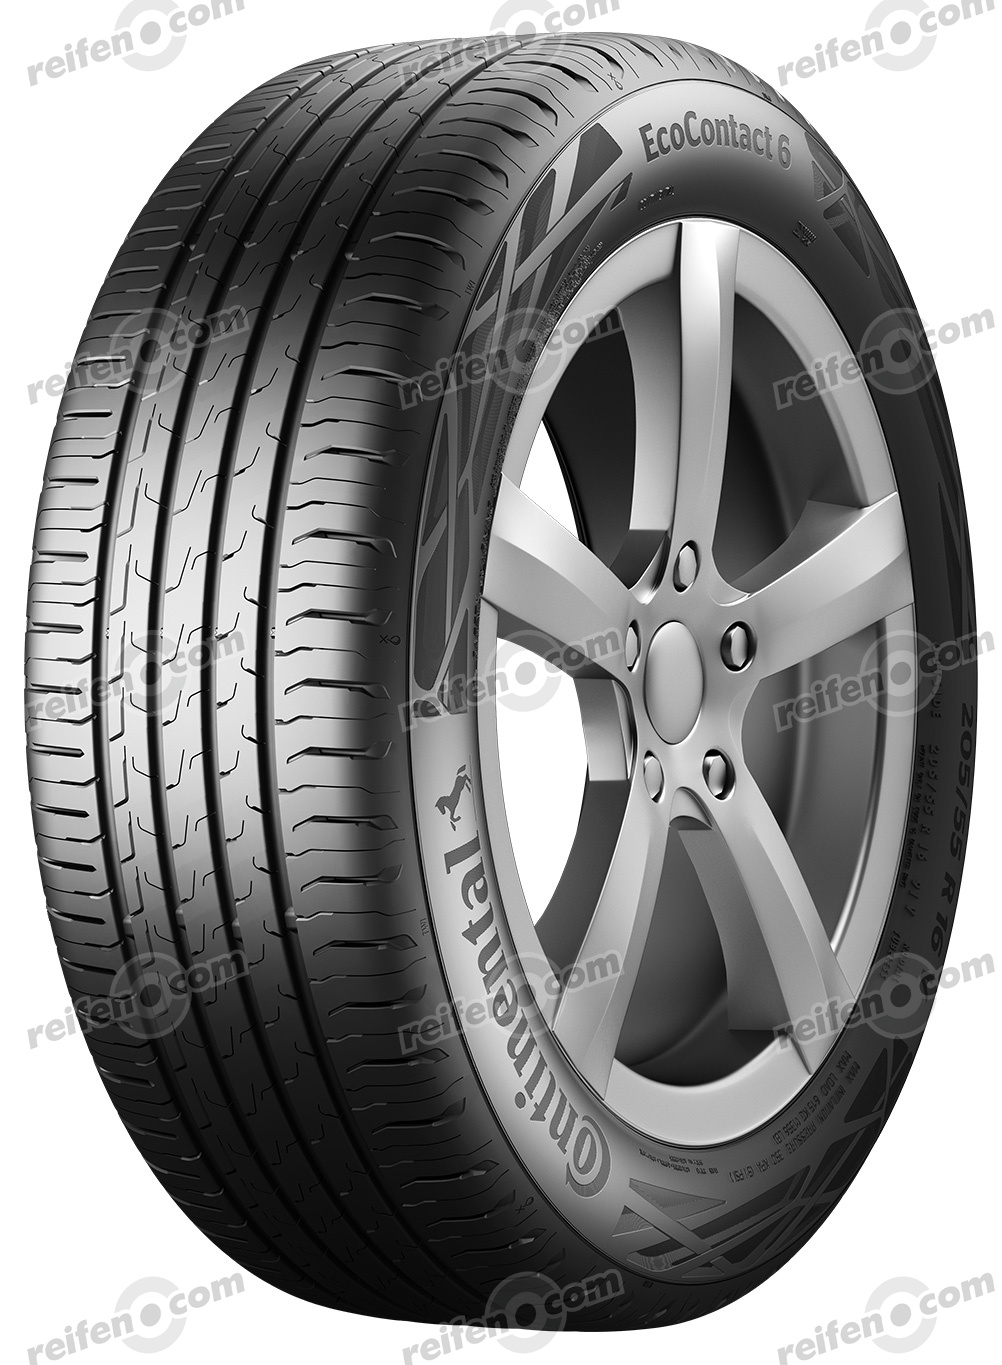 195/65 R15 91V EcoContact 6  EcoContact 6